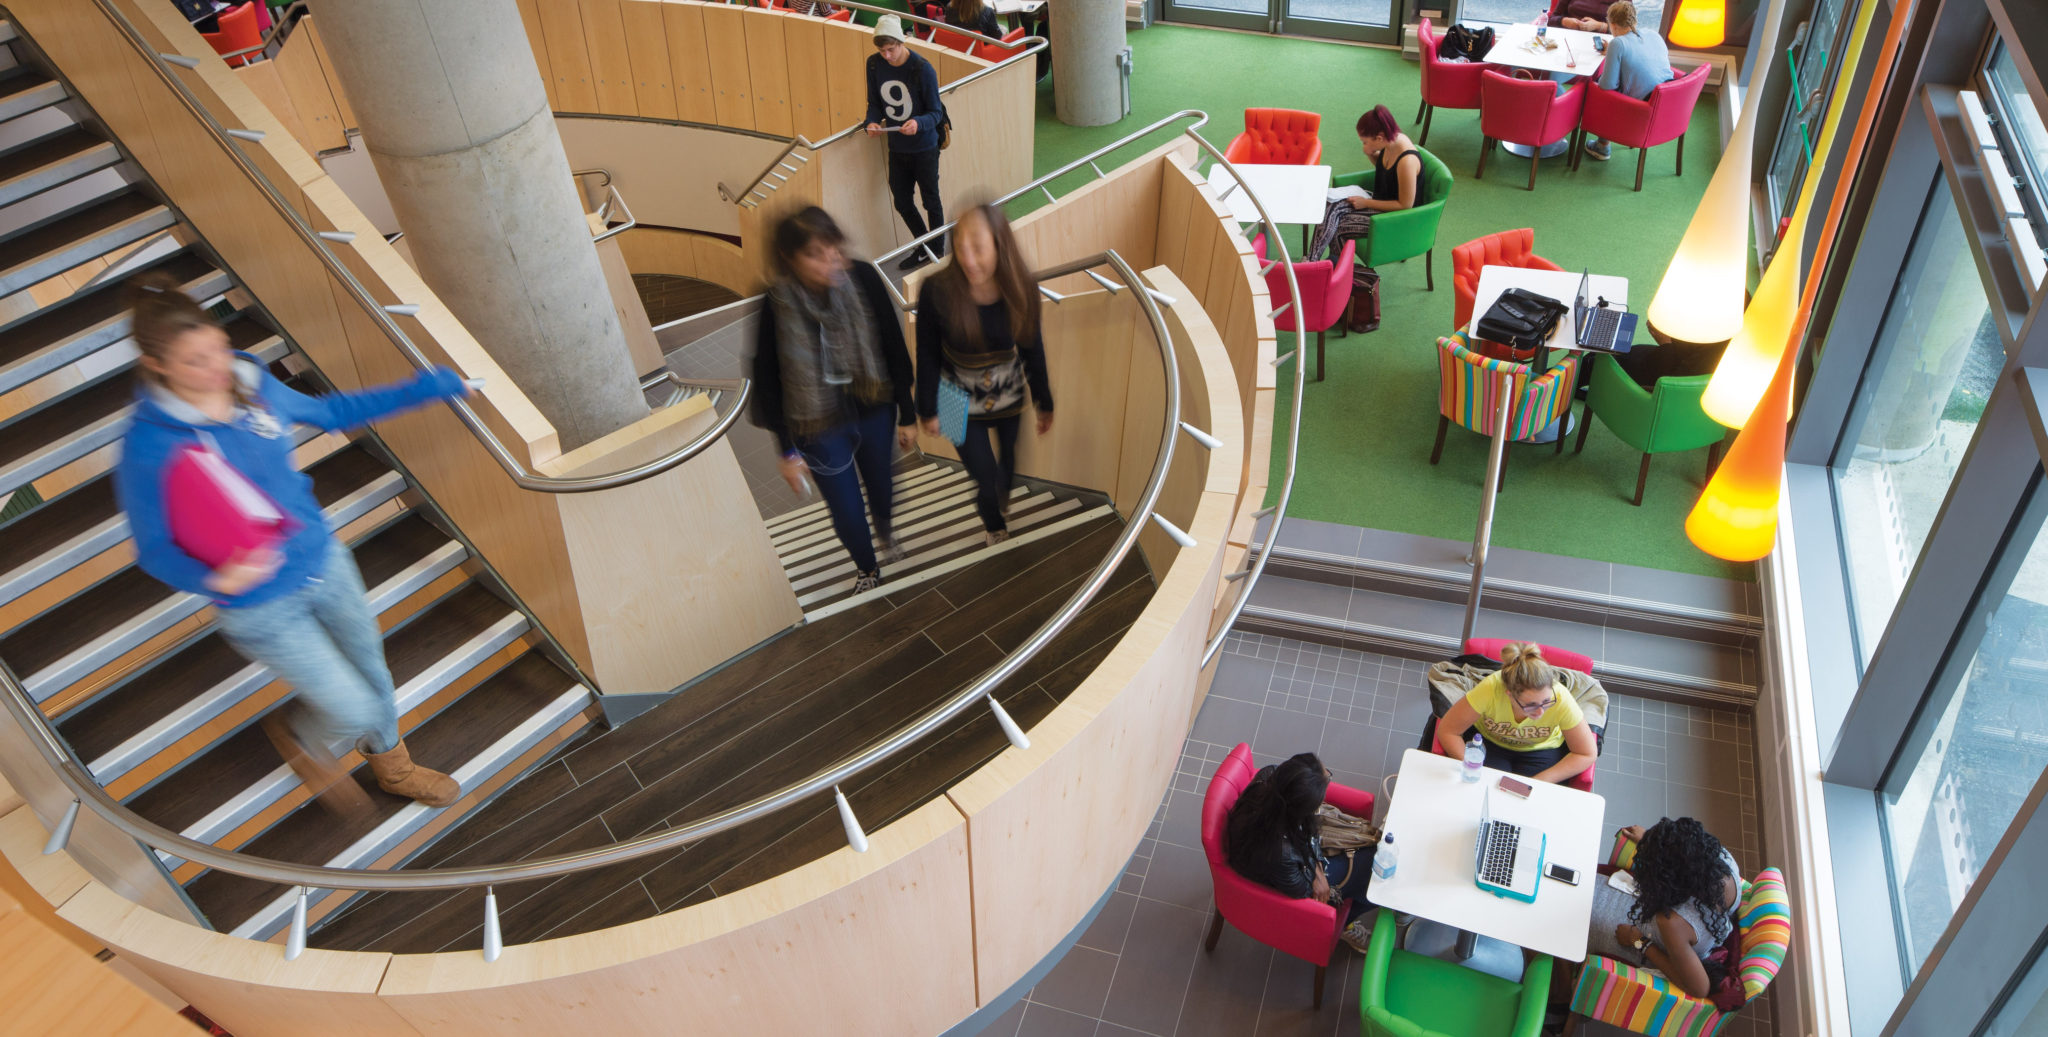 Nottingham-Trent-University-to-become-an-anti-racist-institution